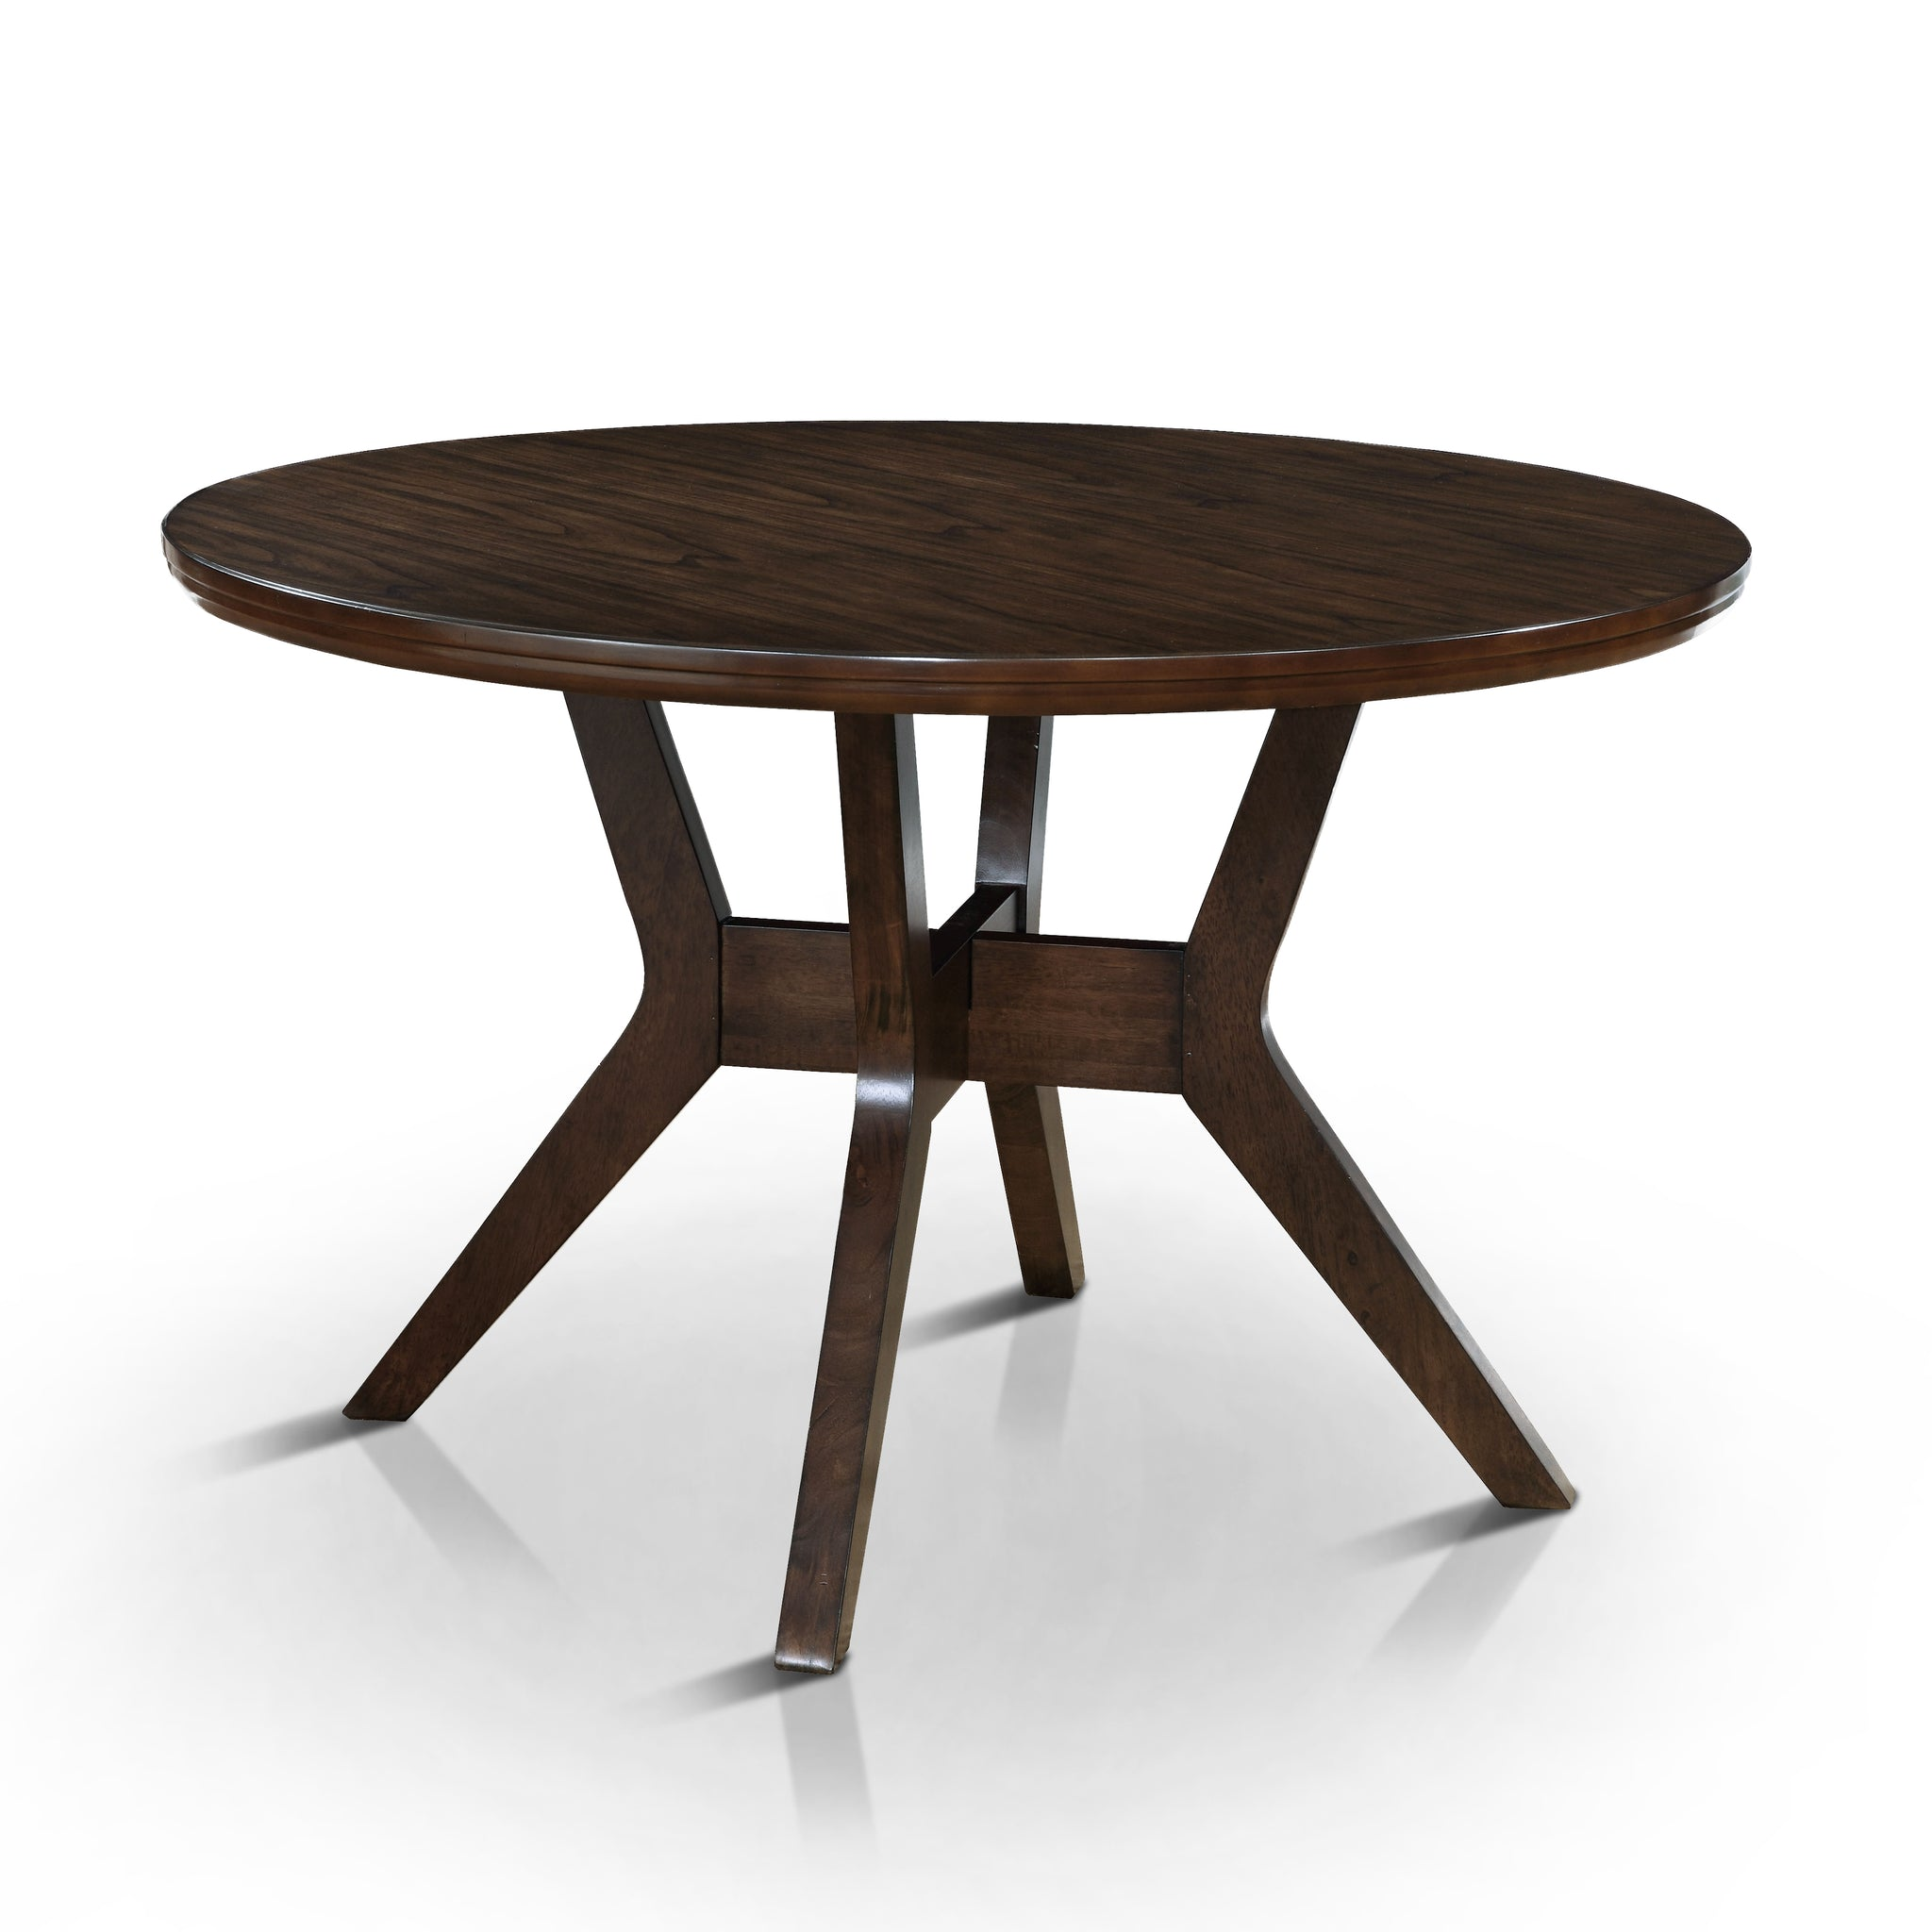 Joplin Mid-Century Modern Round Dining Table, Walnut